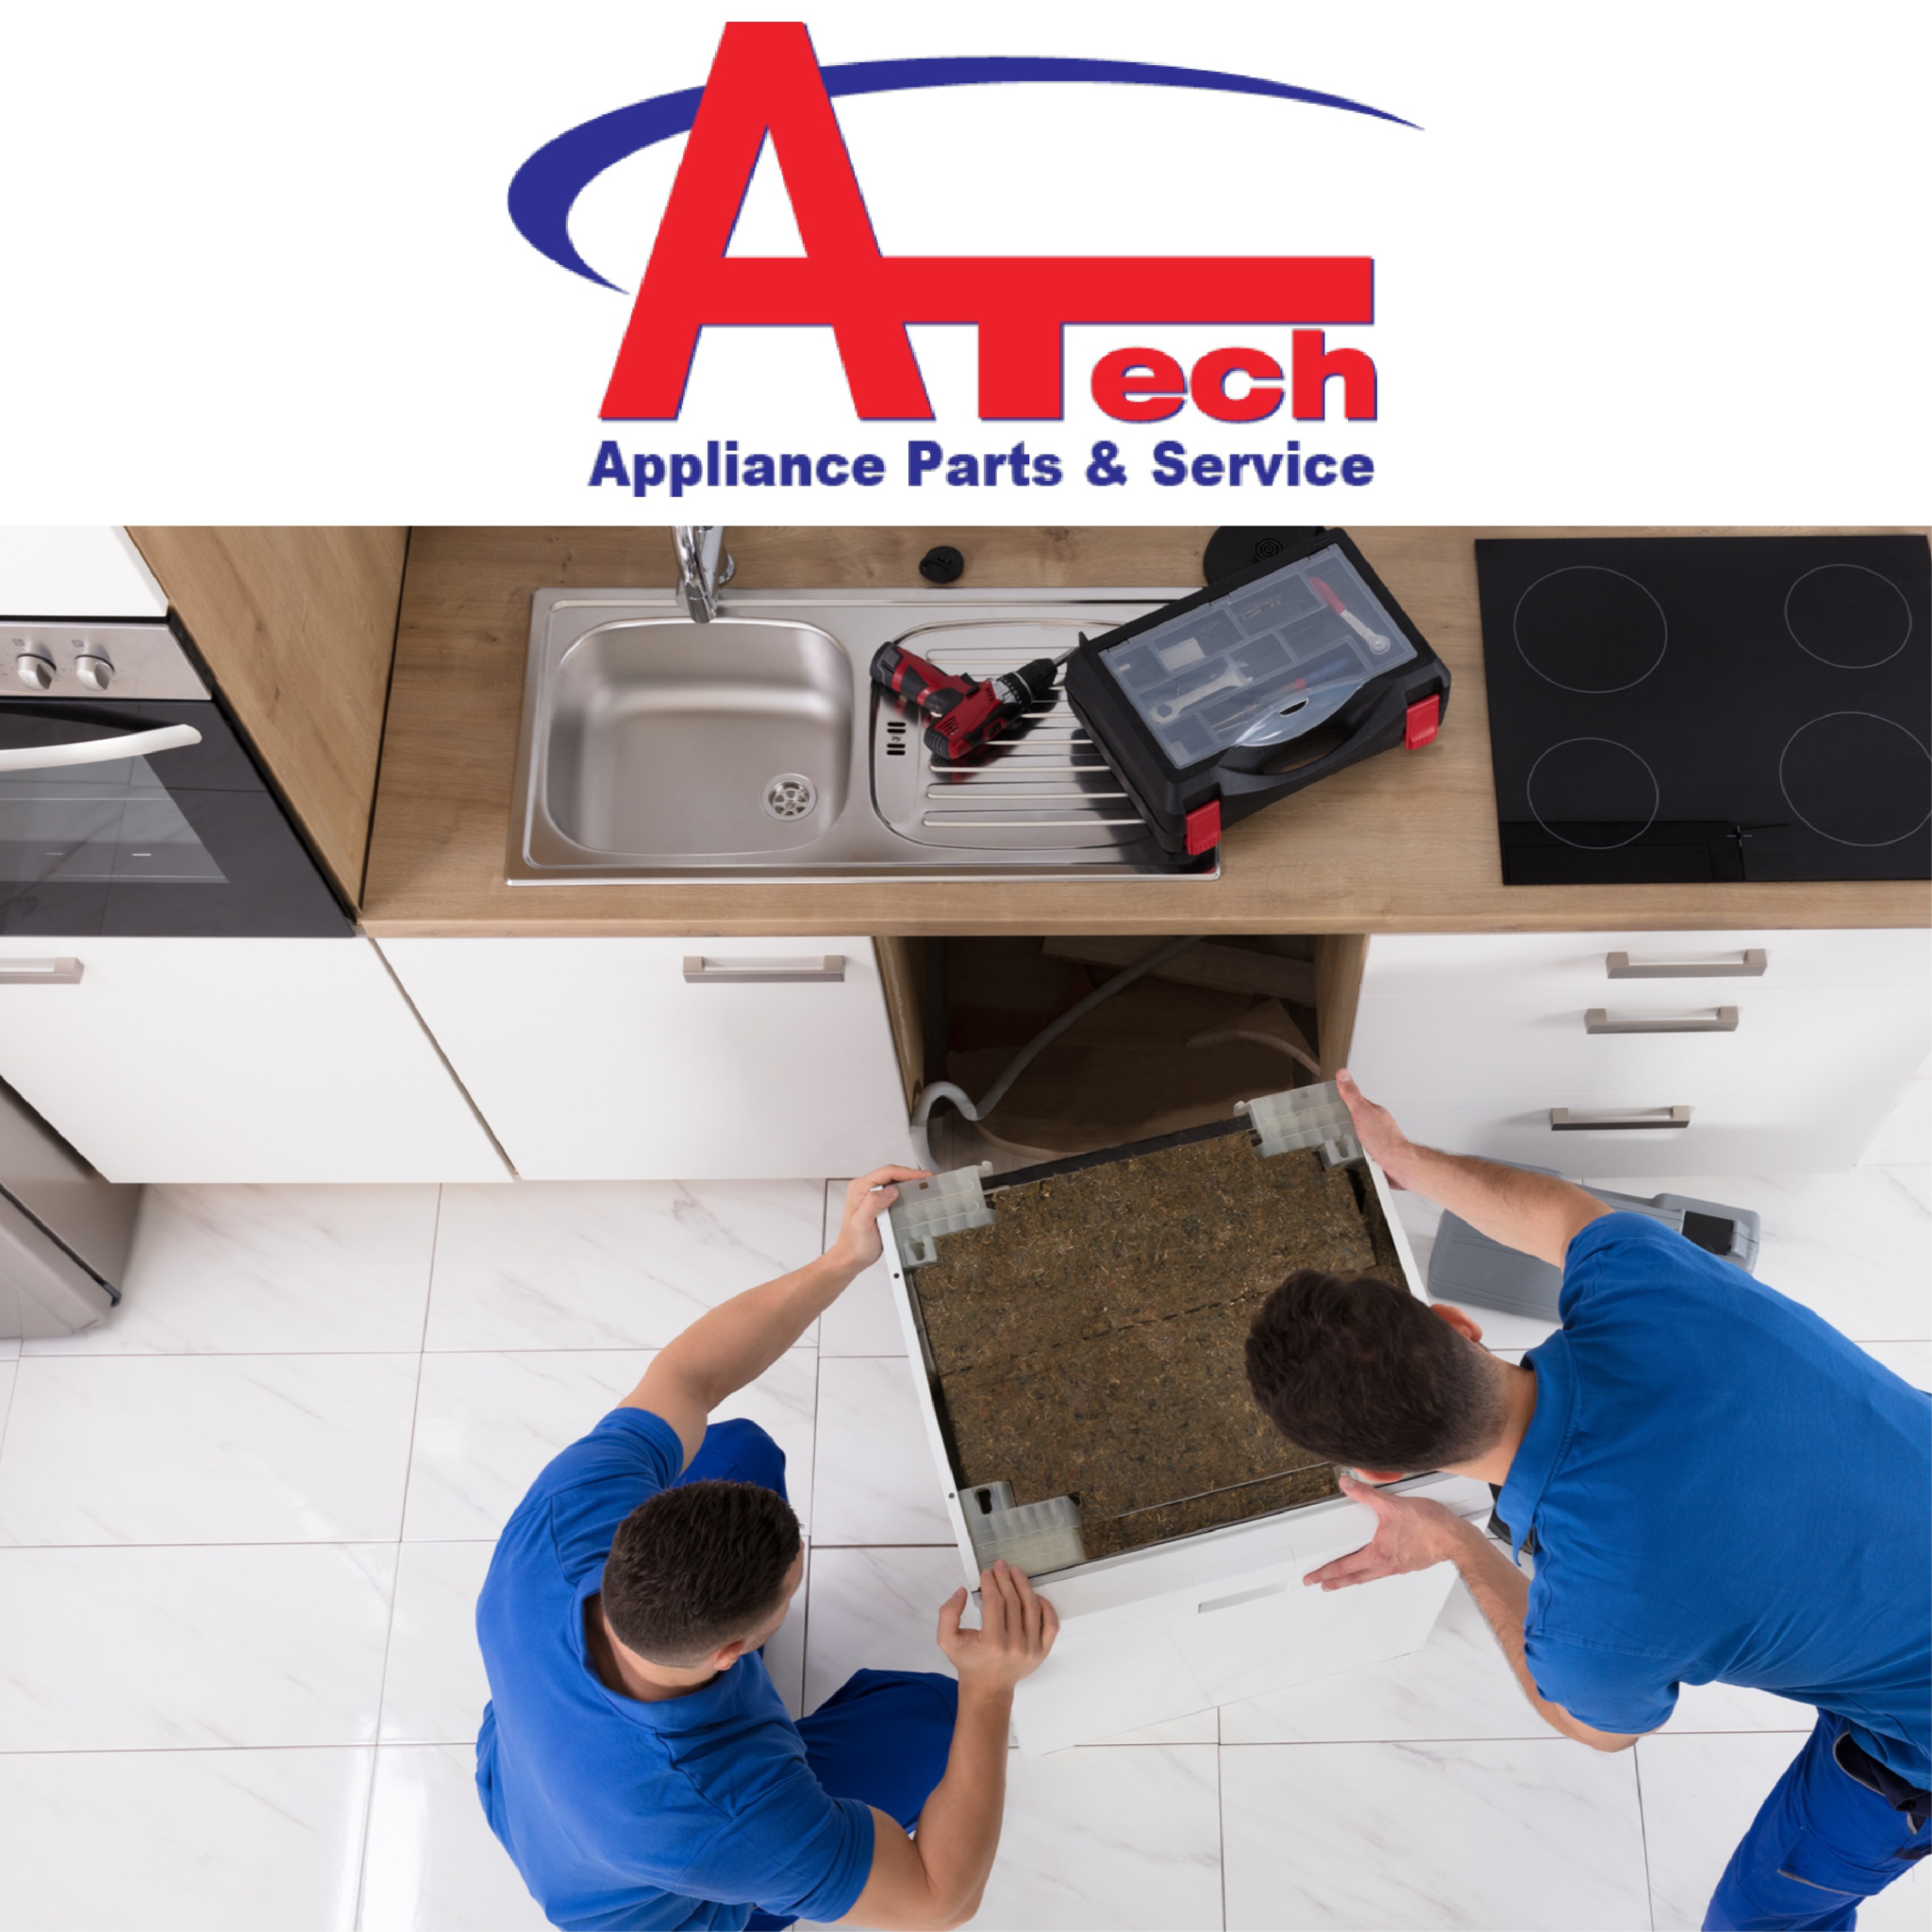 Kitchen Appliance Repair | Oven Repair | Refrigerator Repair | Microwave Repair